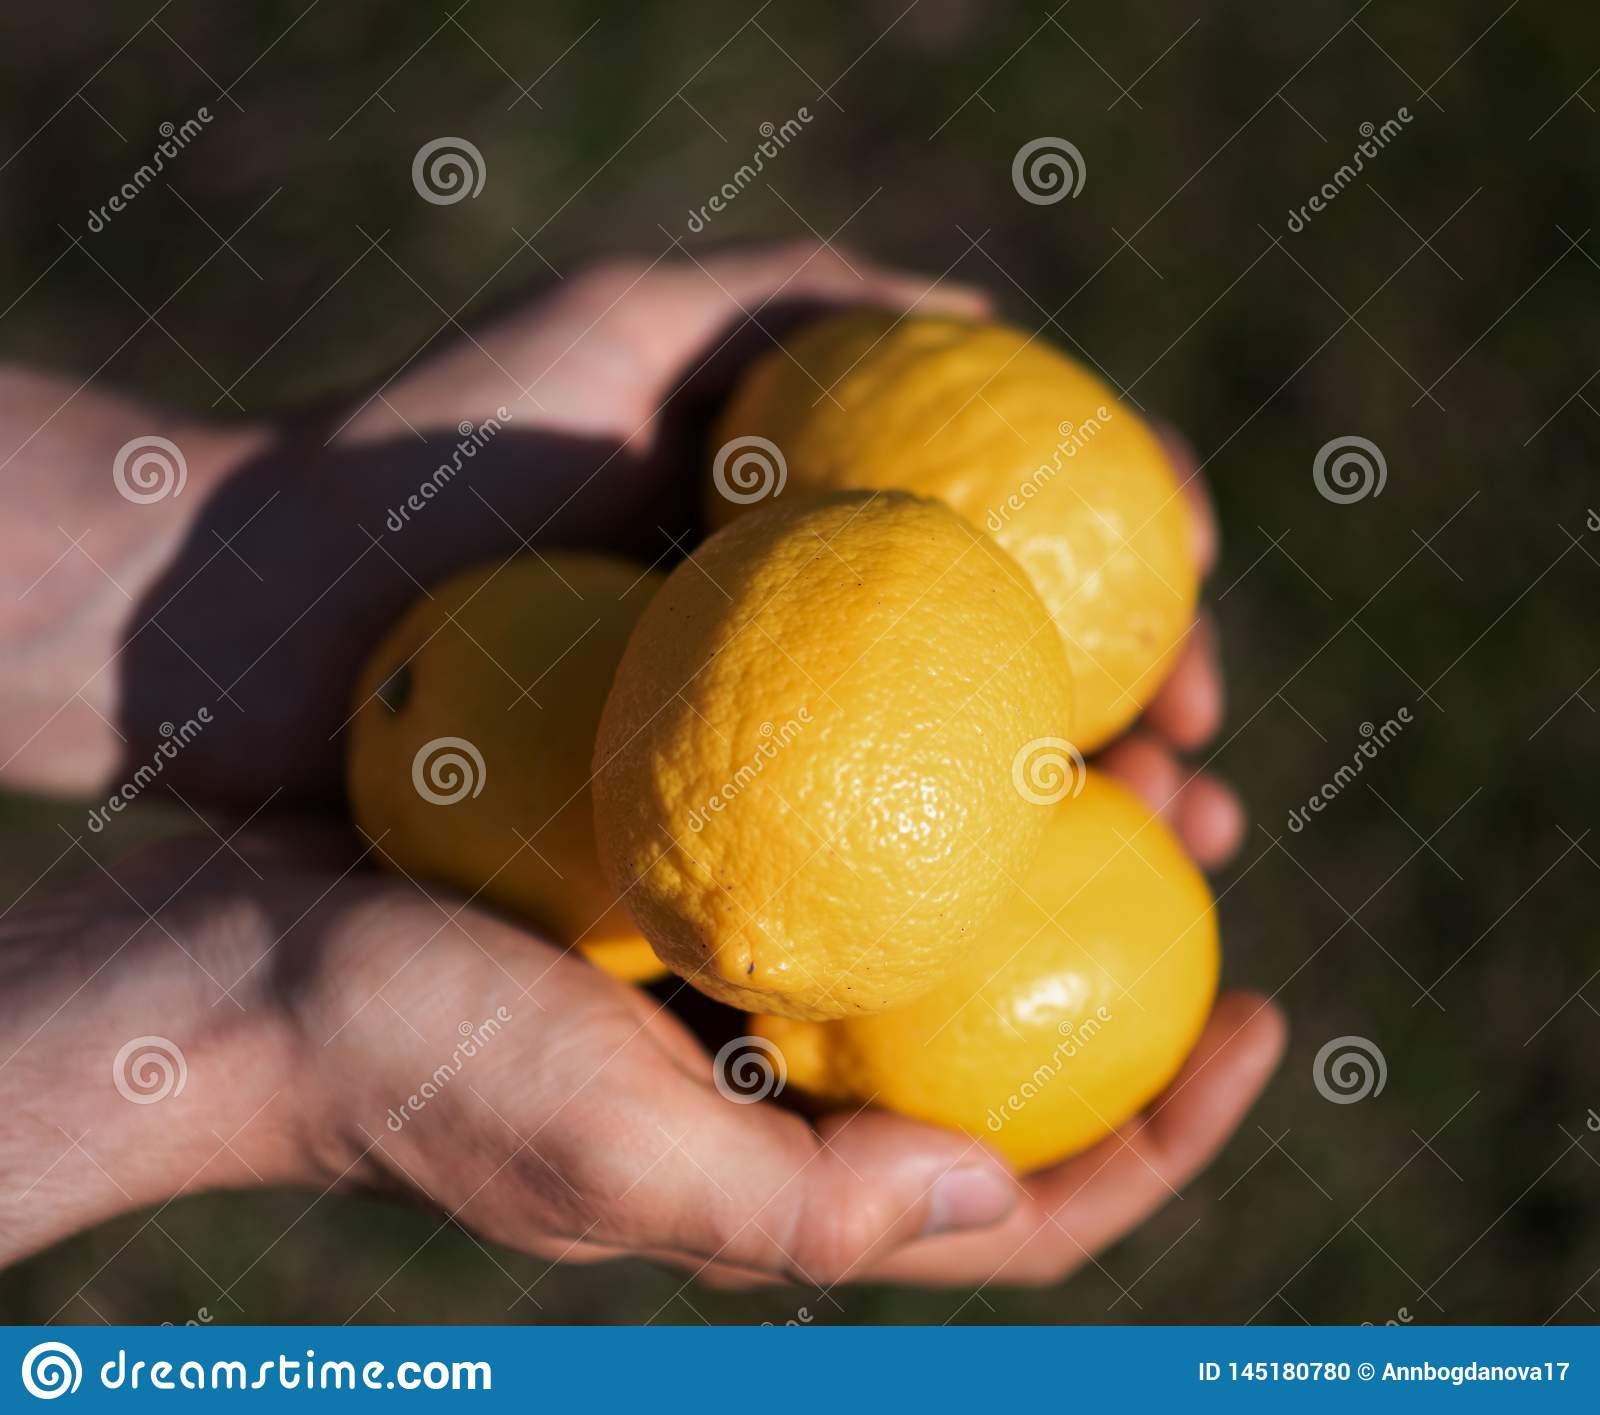 Lemons in the hands outdoors